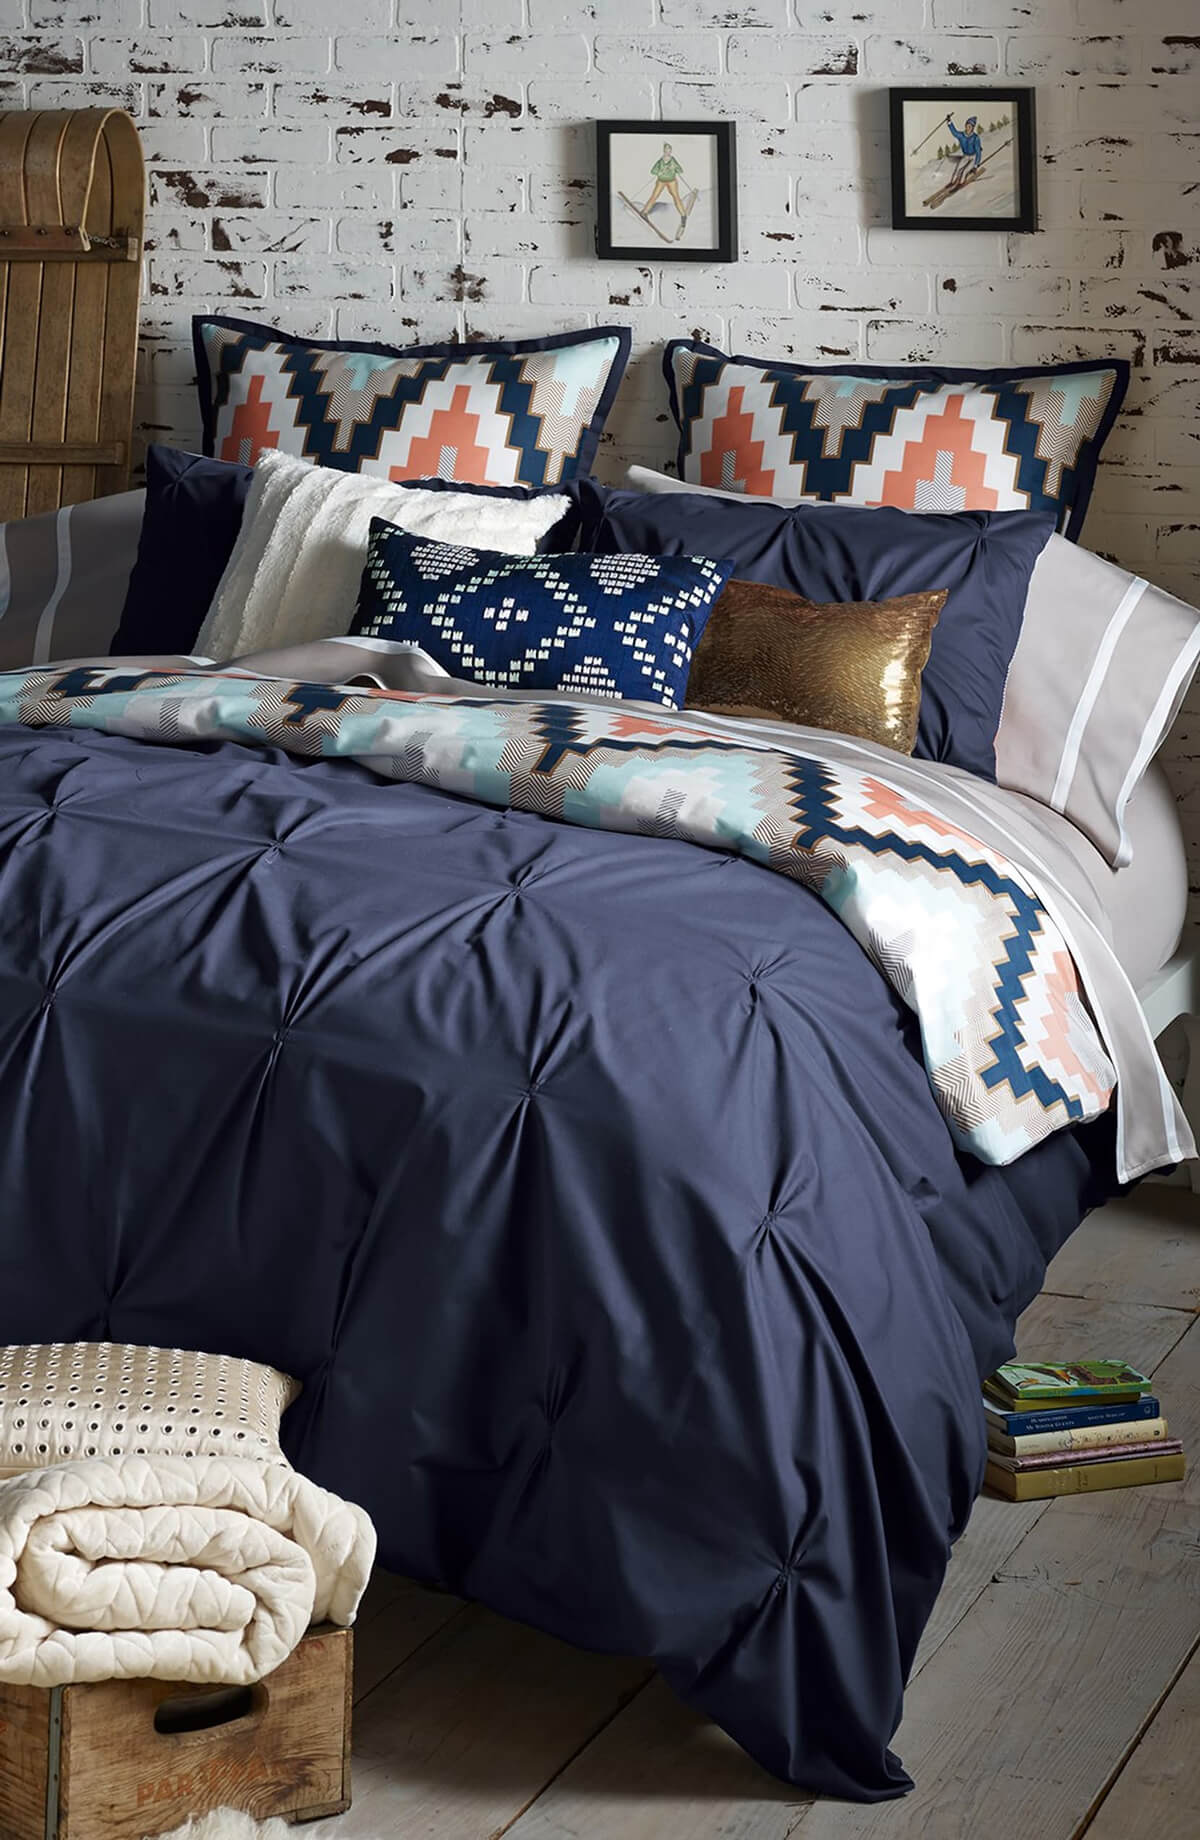 16 Best Navy Blue Bedroom Decor Ideas For A Timeless Makeover In 2021